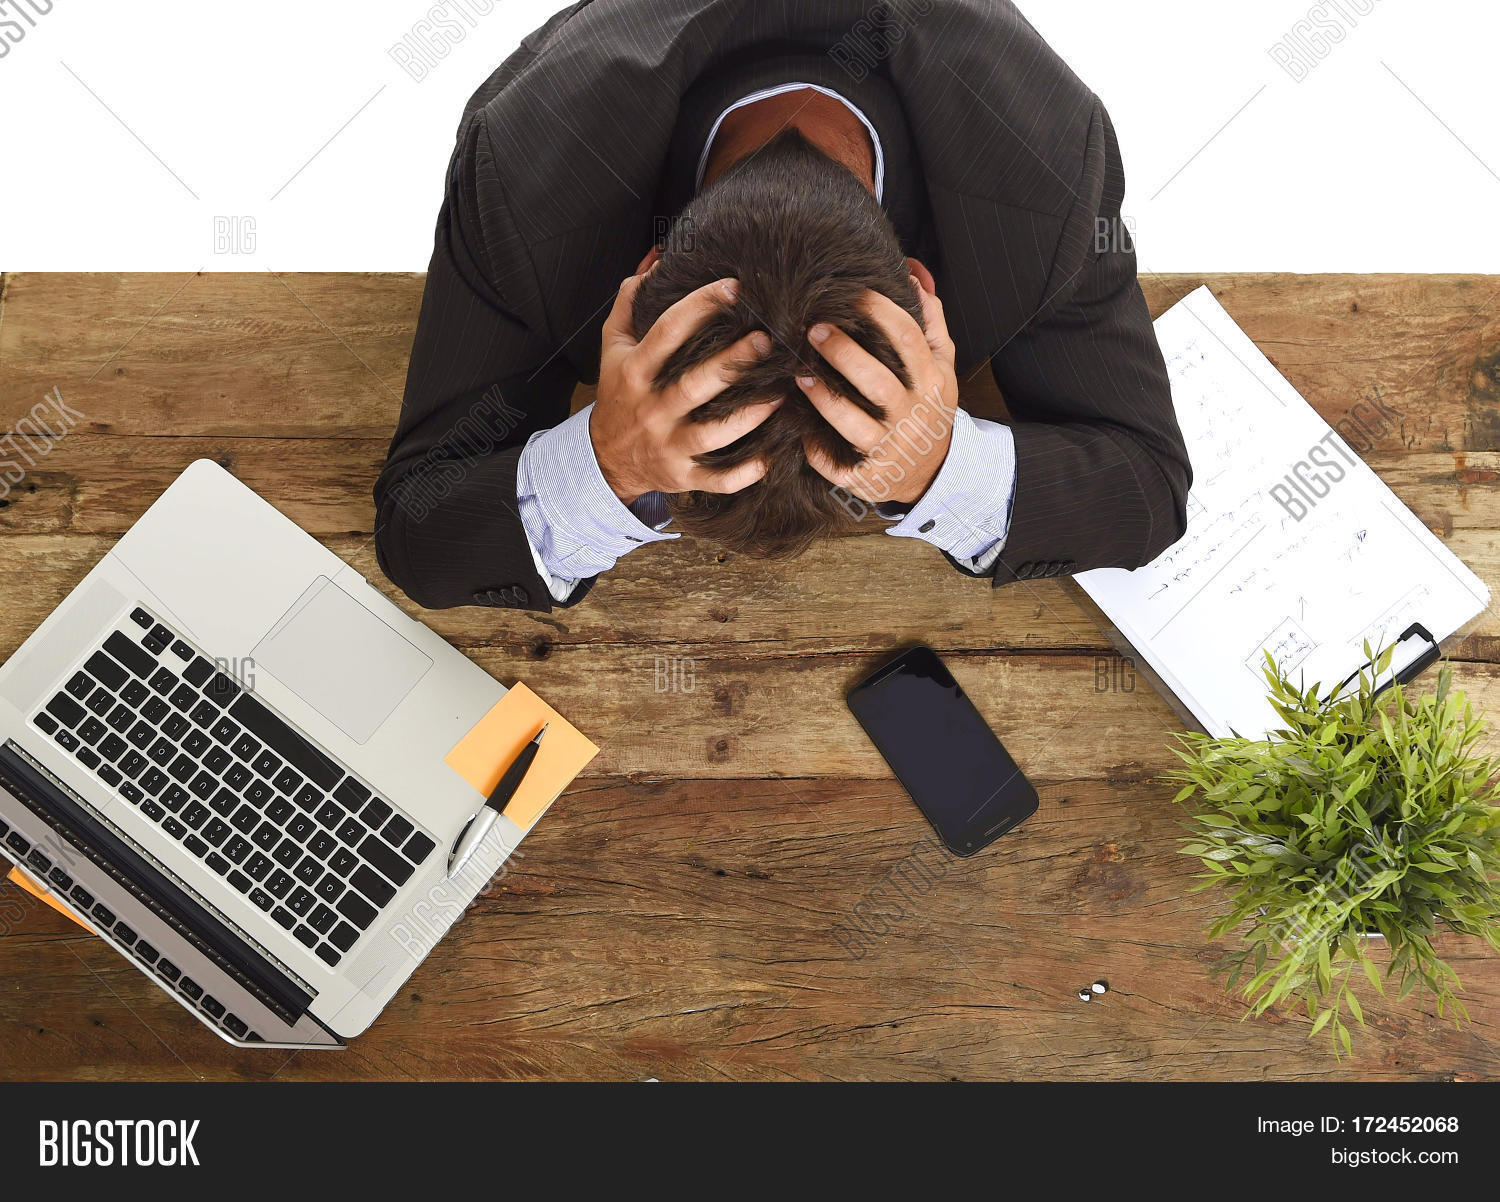 alone,business,businessman,collar,computer,corporate,crisis,crying,defeat,desk,despair,desperate,disaster,employee,exhausted,face,fired,frustrated,frustration,give,guy,hair,hands,head,helpless,isolated,laptop,load,man,notepad,office,one,overwhelmed,overwork,paperwork,people,person,problem,sitting,stress,stressed,suit,table,tired,wasted,white,work,workplace,young